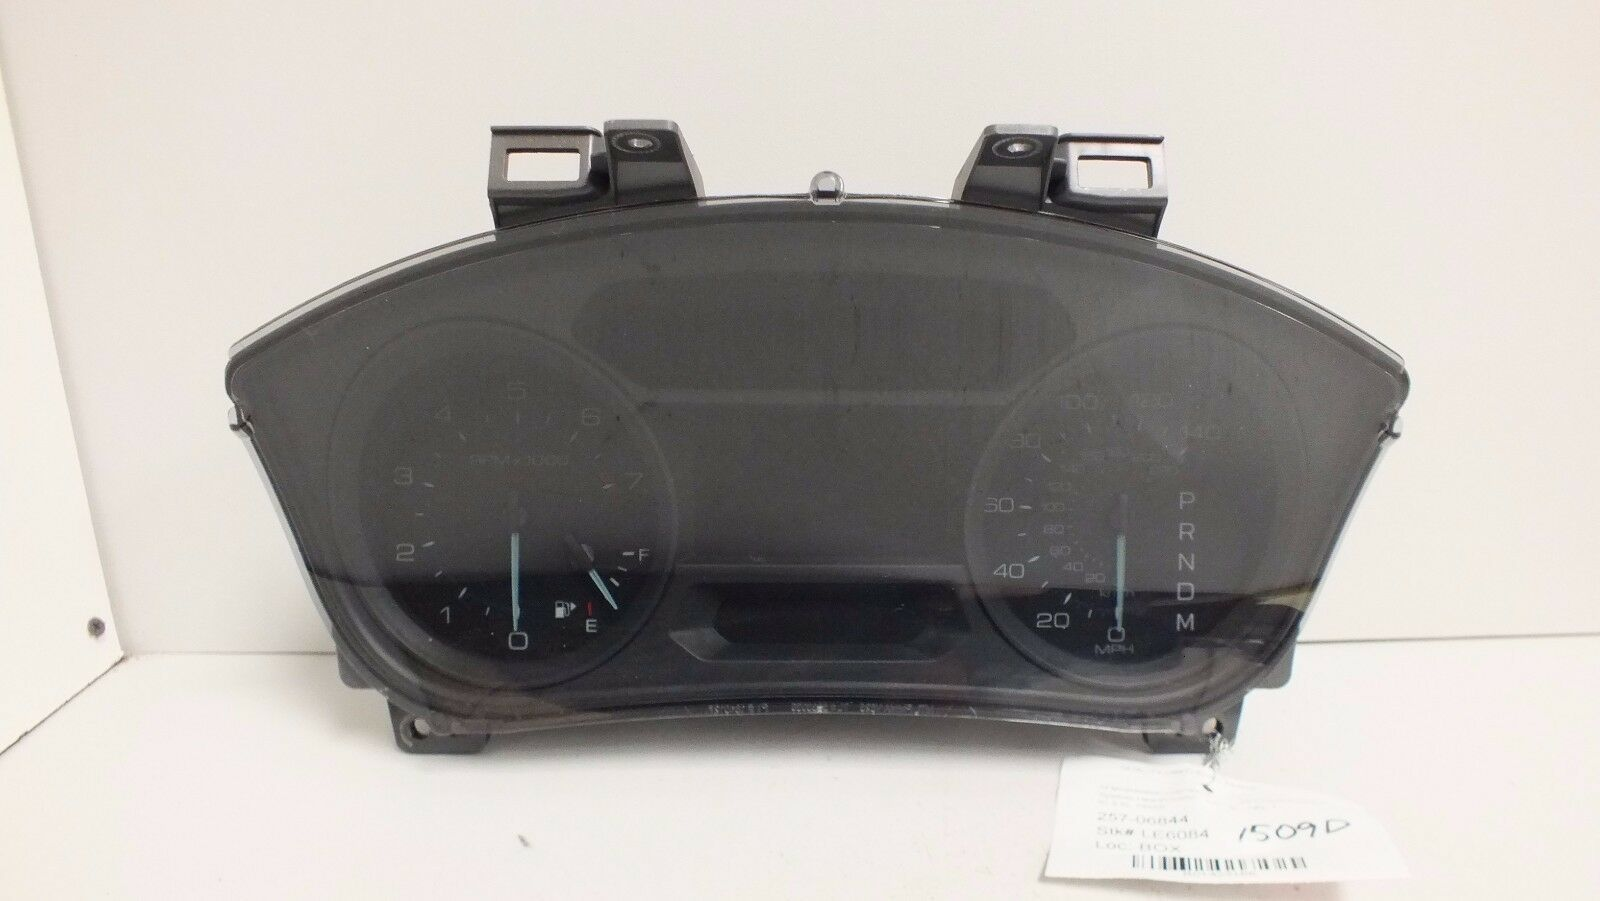 Primary image for 12 2012 FORD EXPLORER 3.5L INSTRUMENT CLUSTER CB5T-10849-EG (78k miles) #1509D